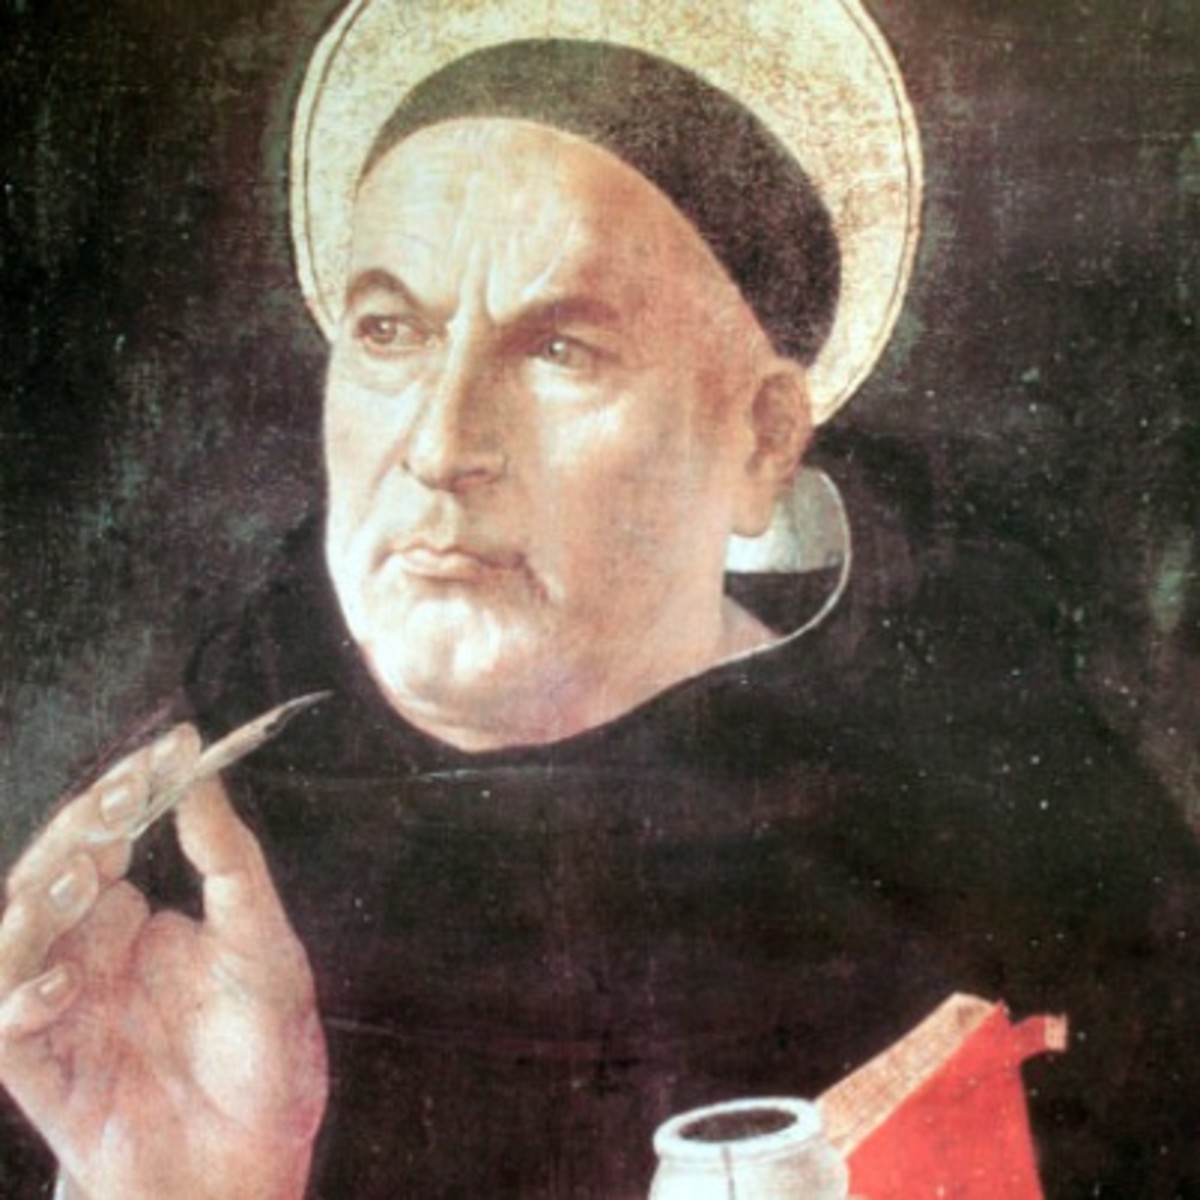 5 points to believe god exists according to st thomas aquinas Five reasons to believe that god exists according st thomas aquinas five reasons to believe that god exists according st thomas aquinas skip navigation sign in search loading.